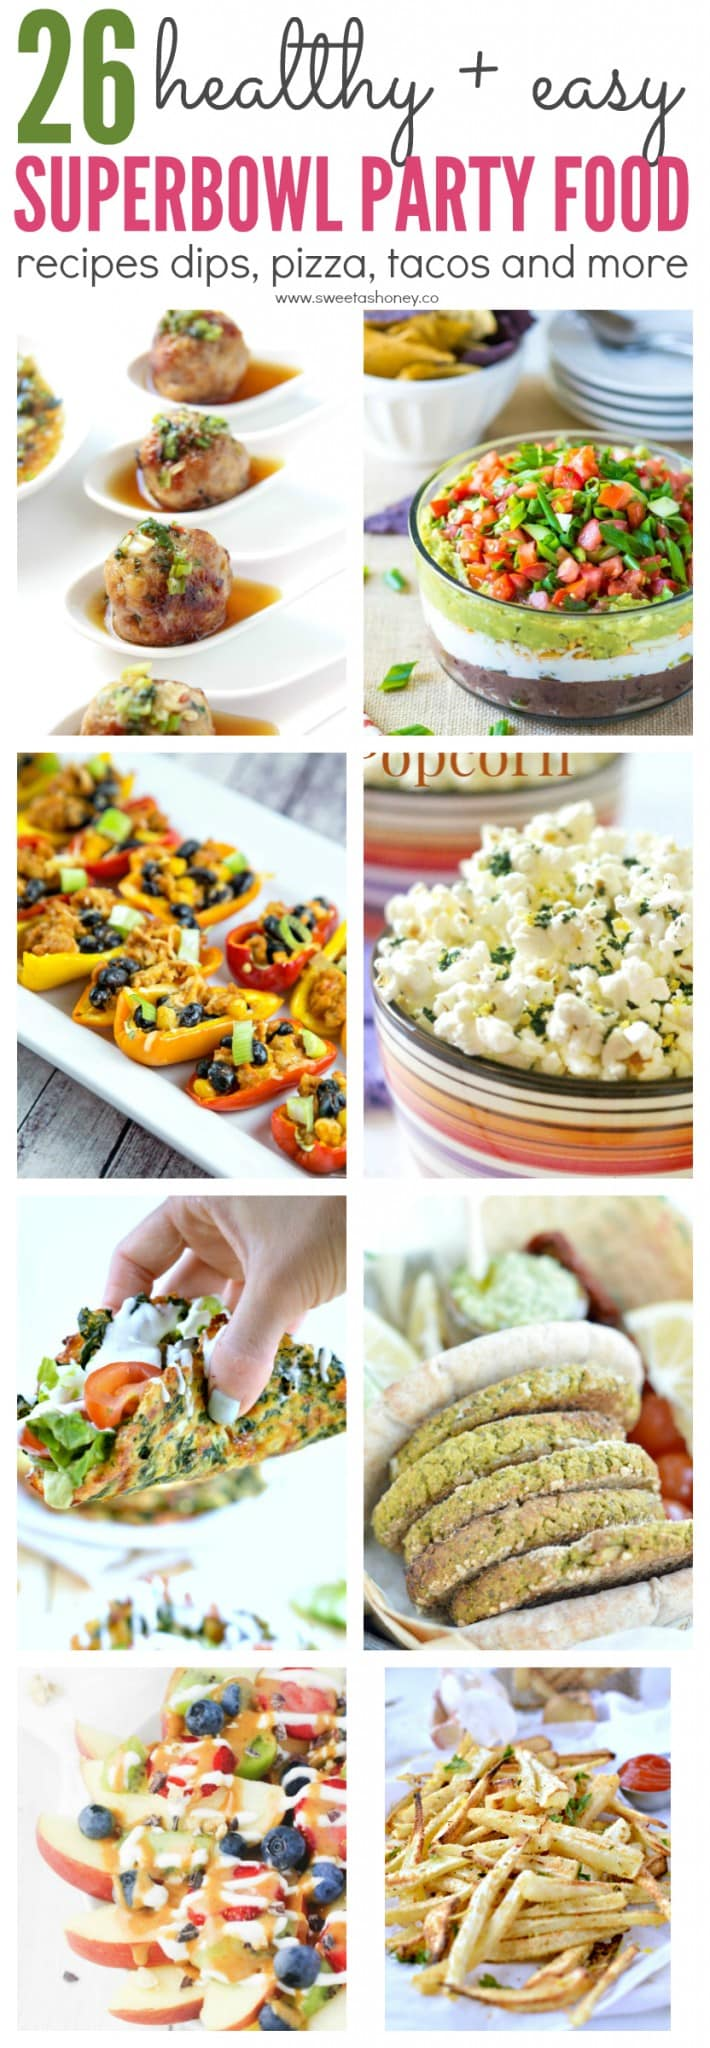 26 healthy superbowl party food recipes